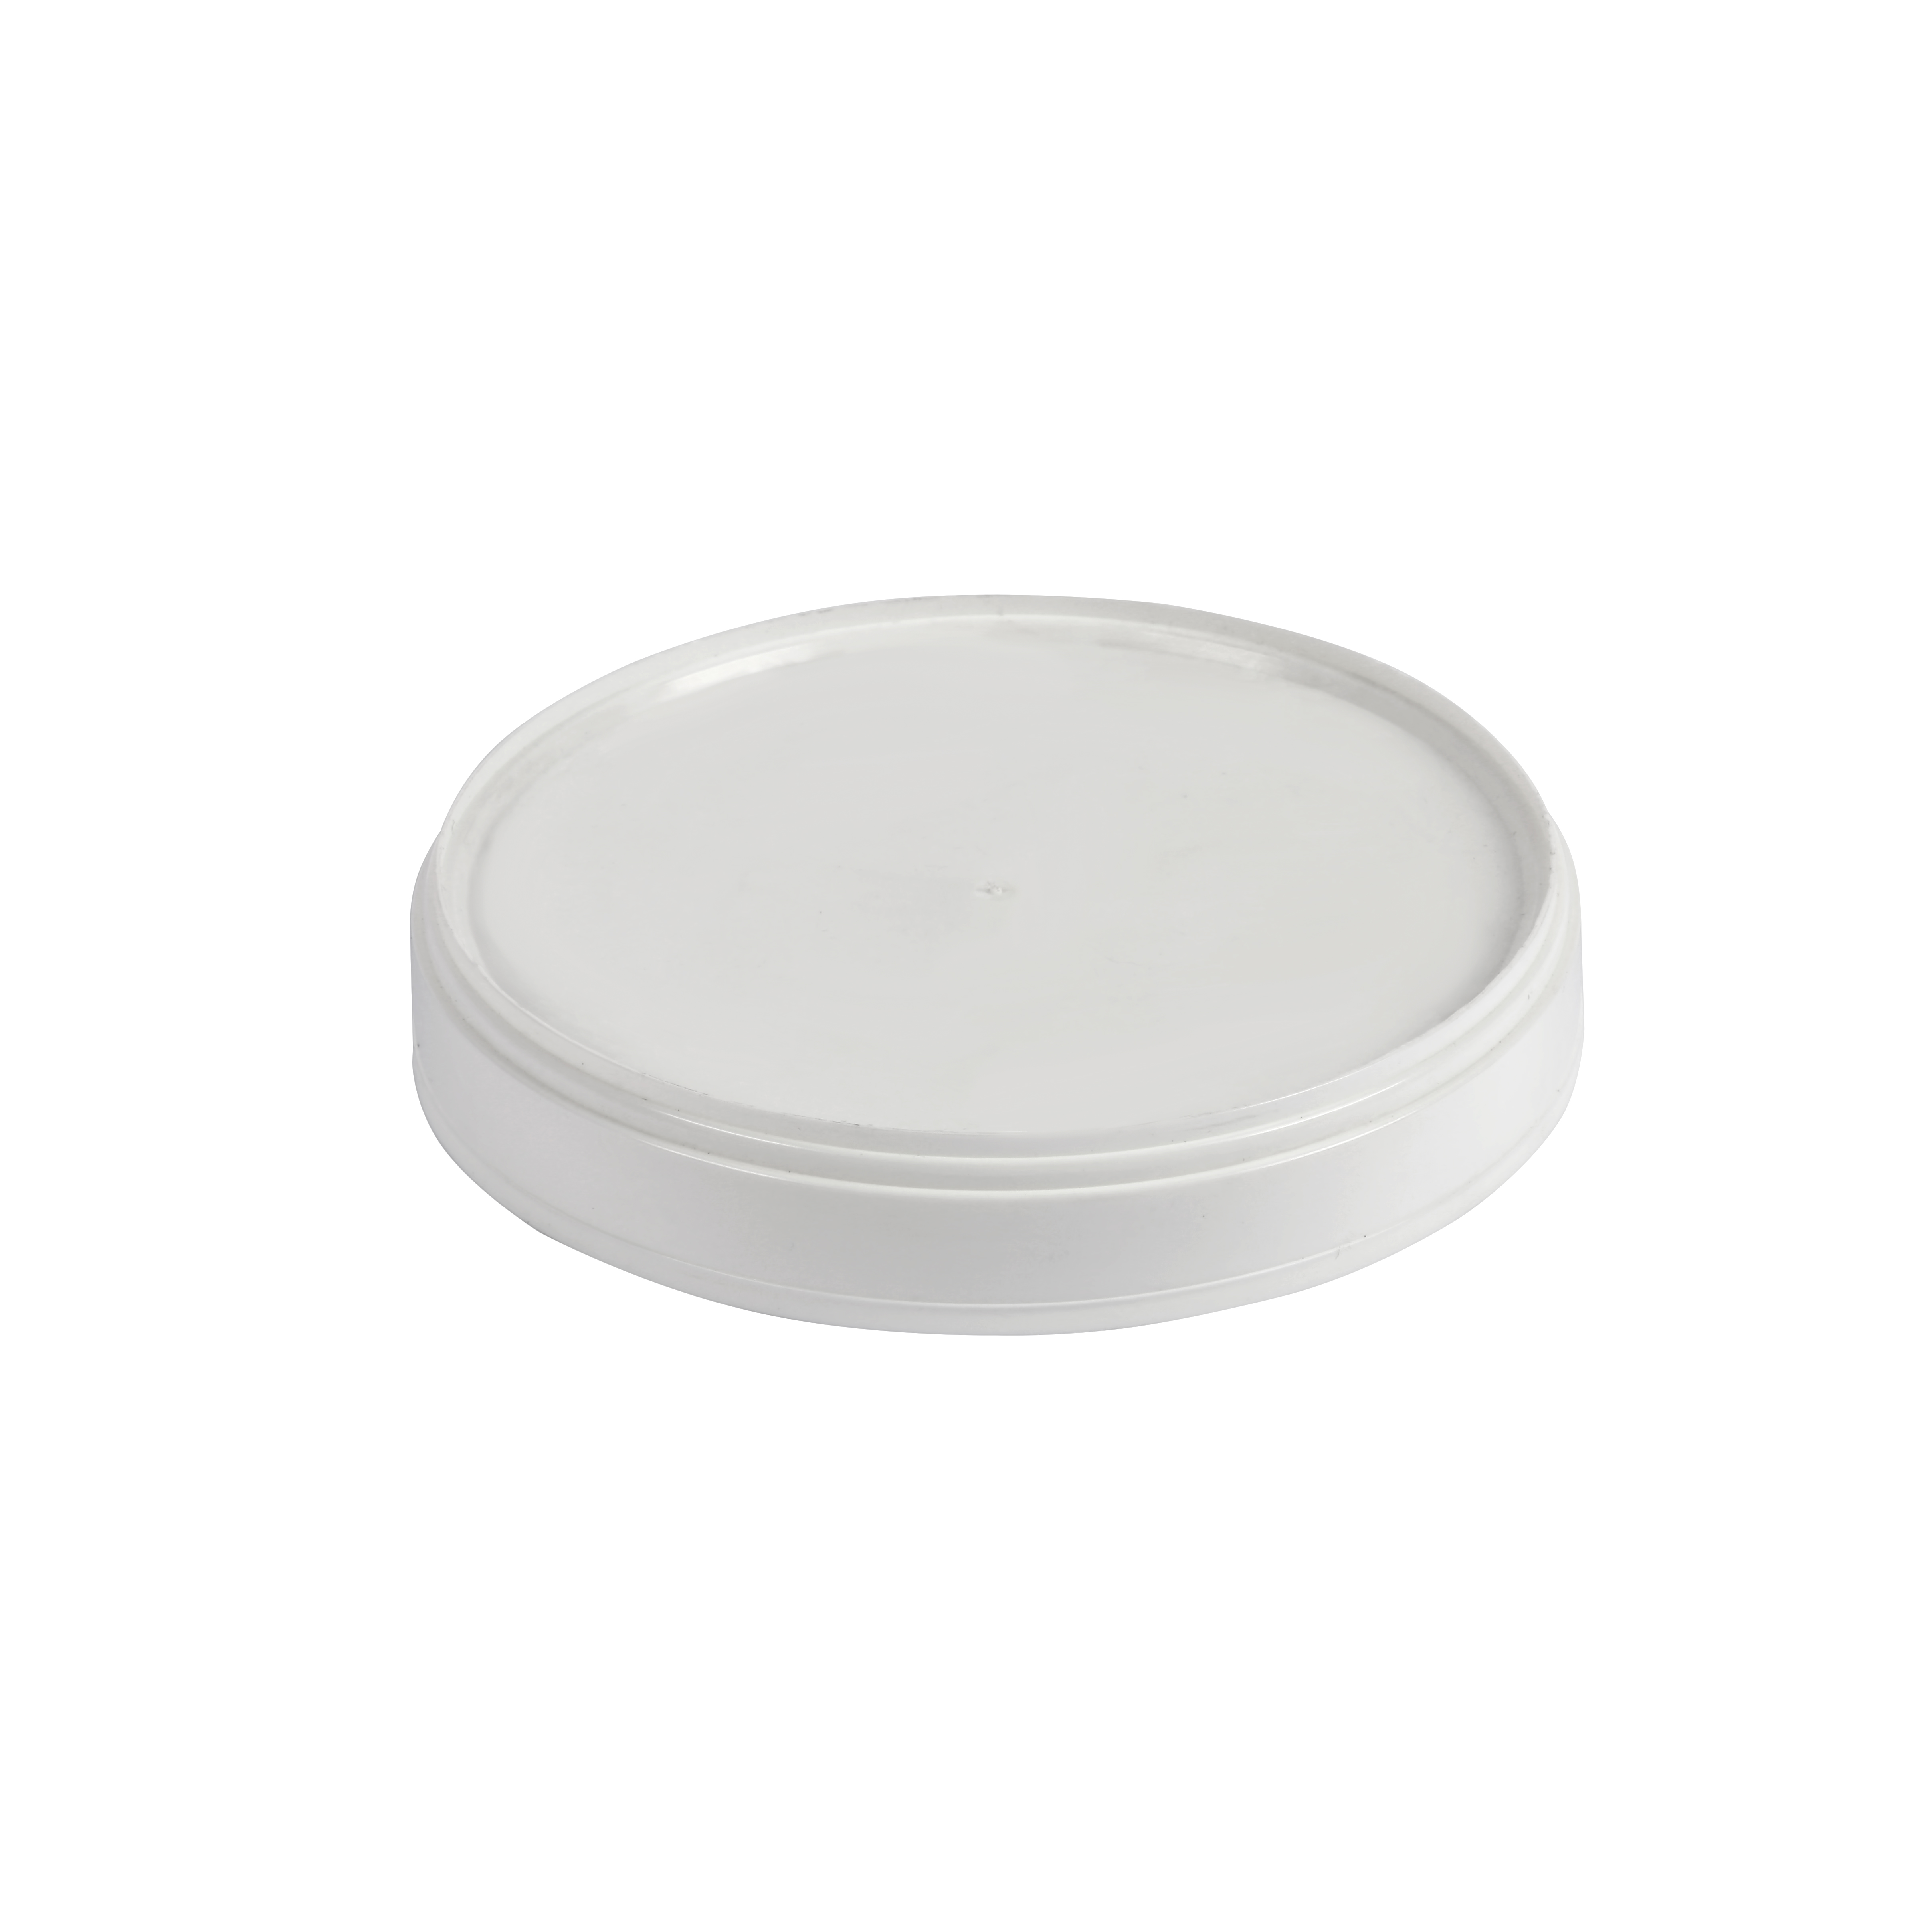 Polymeric round lid 118 mm diameter for big cardboard buckets